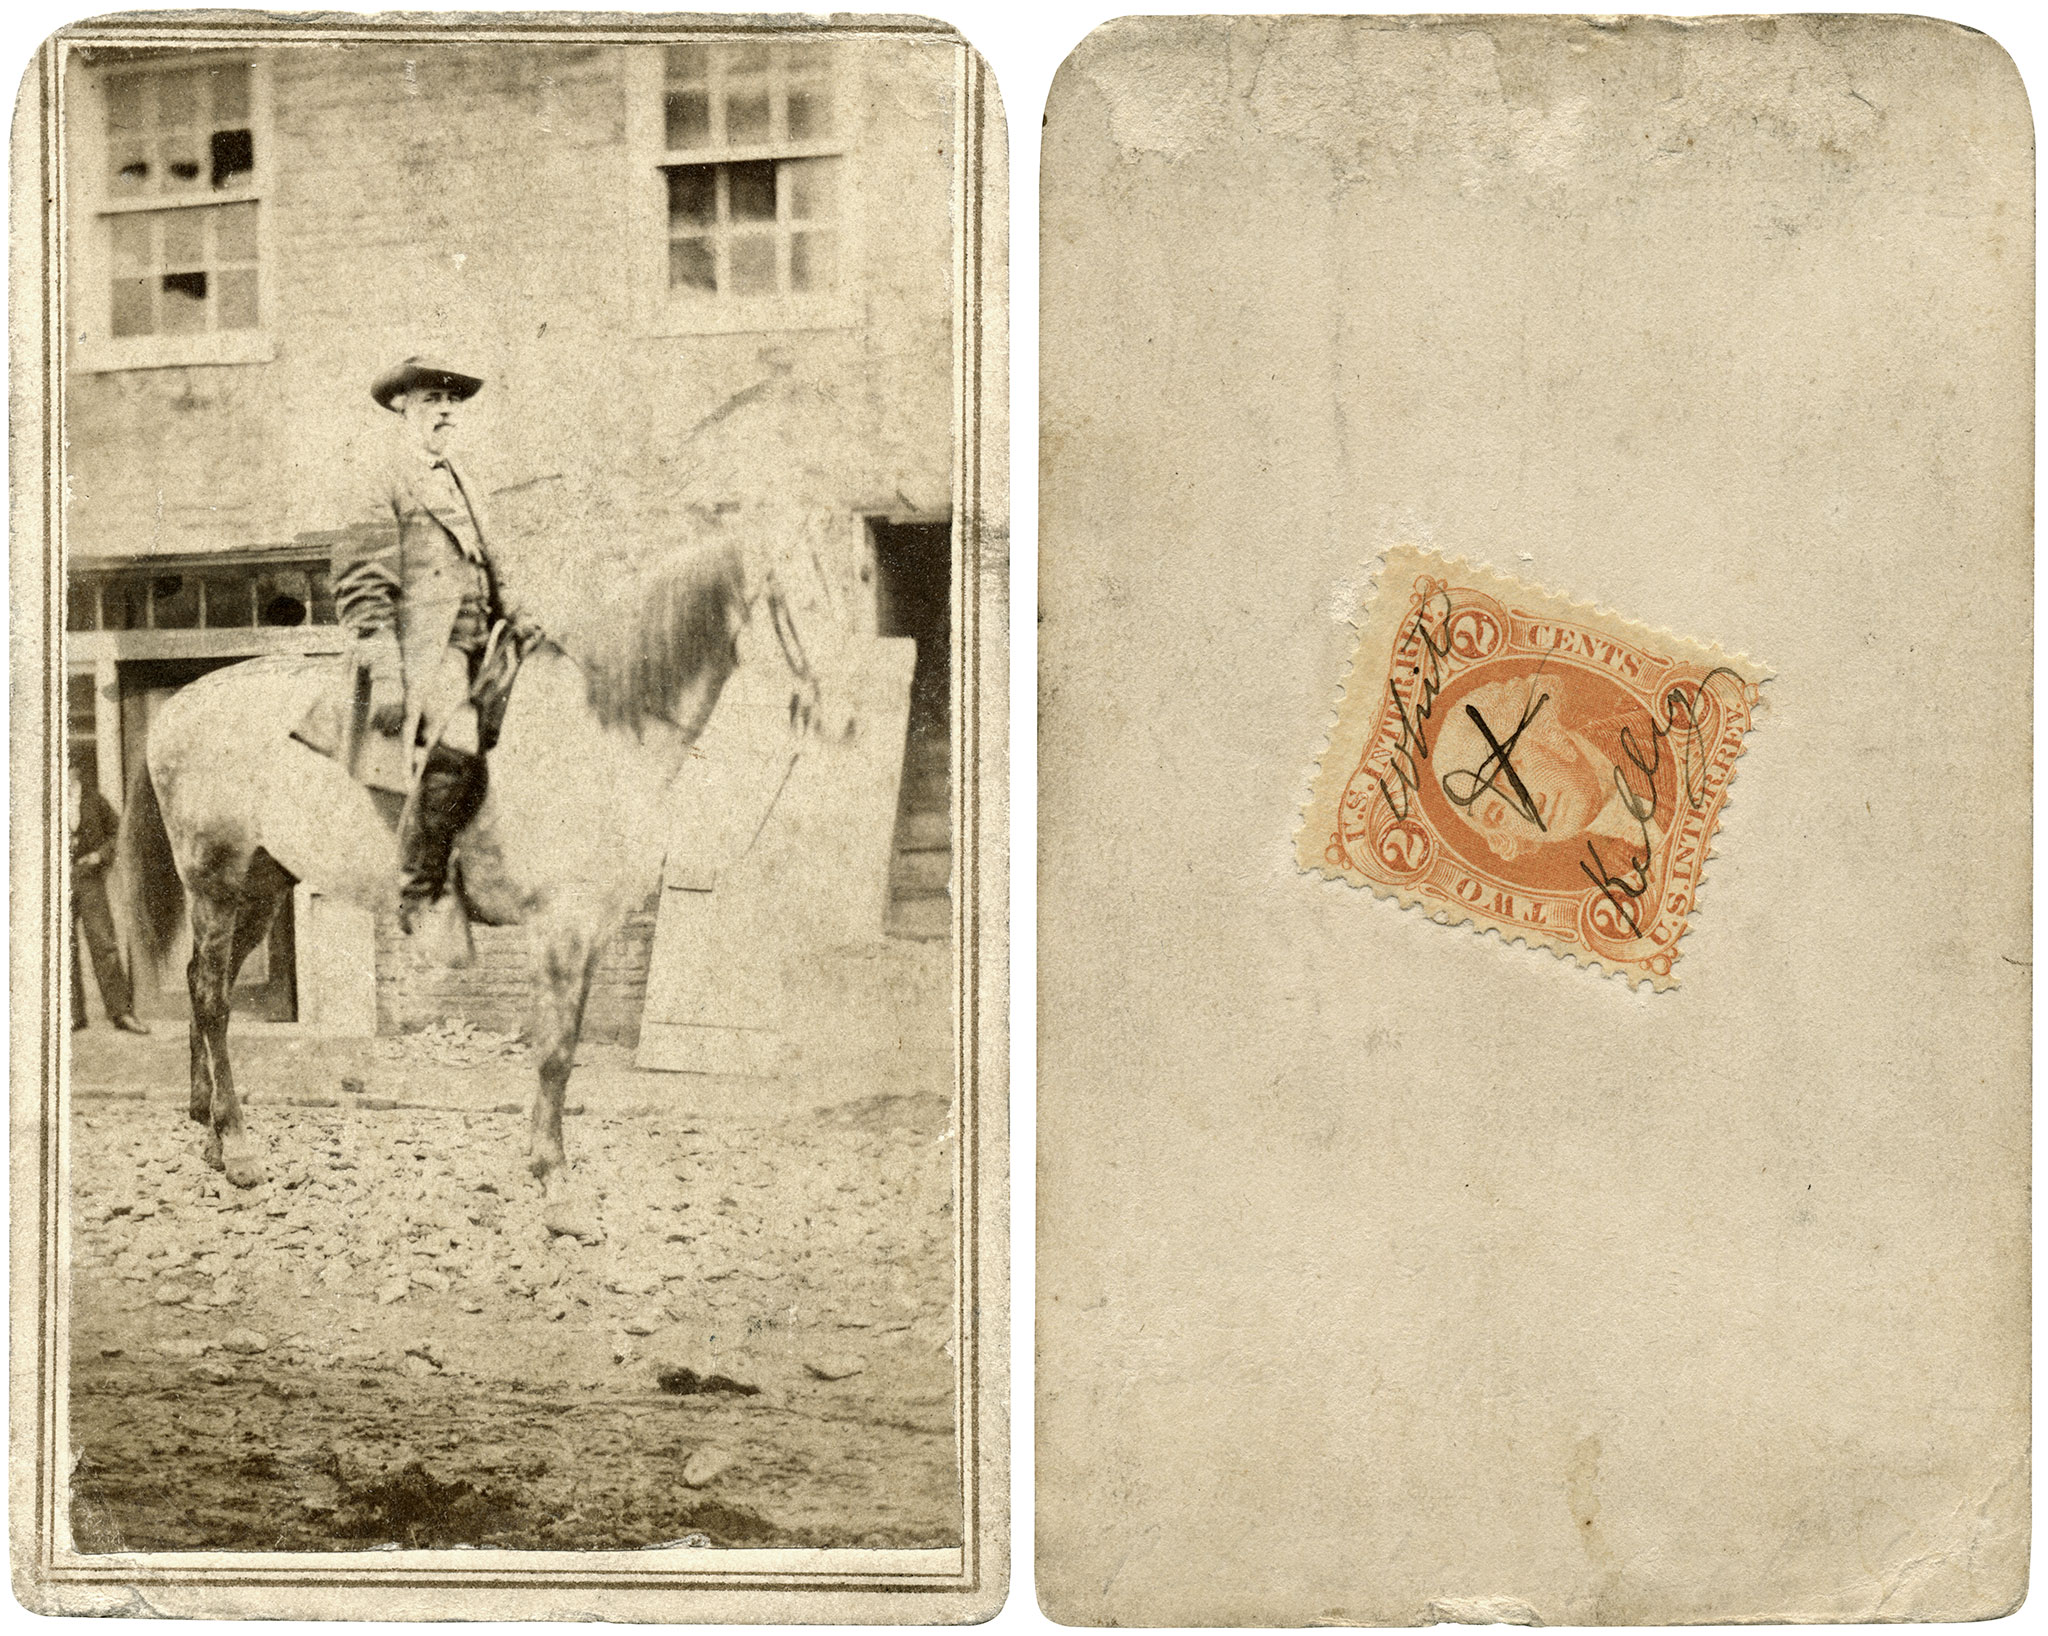 The presence of what appears to be broken windows and debris in the street may have reinforced the belief that this carte de visite was produced in war-torn Petersburg, Va., prior to its evacuation on April 2, 1865. Closer inspection indicates that reflections from a tree or building caused the windows to appear broken. Also, that the debris below Traveller's hooves are leaves. It is reasonable to conclude that the horse would have difficulty standing upon broken bits of brick, wood and stone. Author's collection.